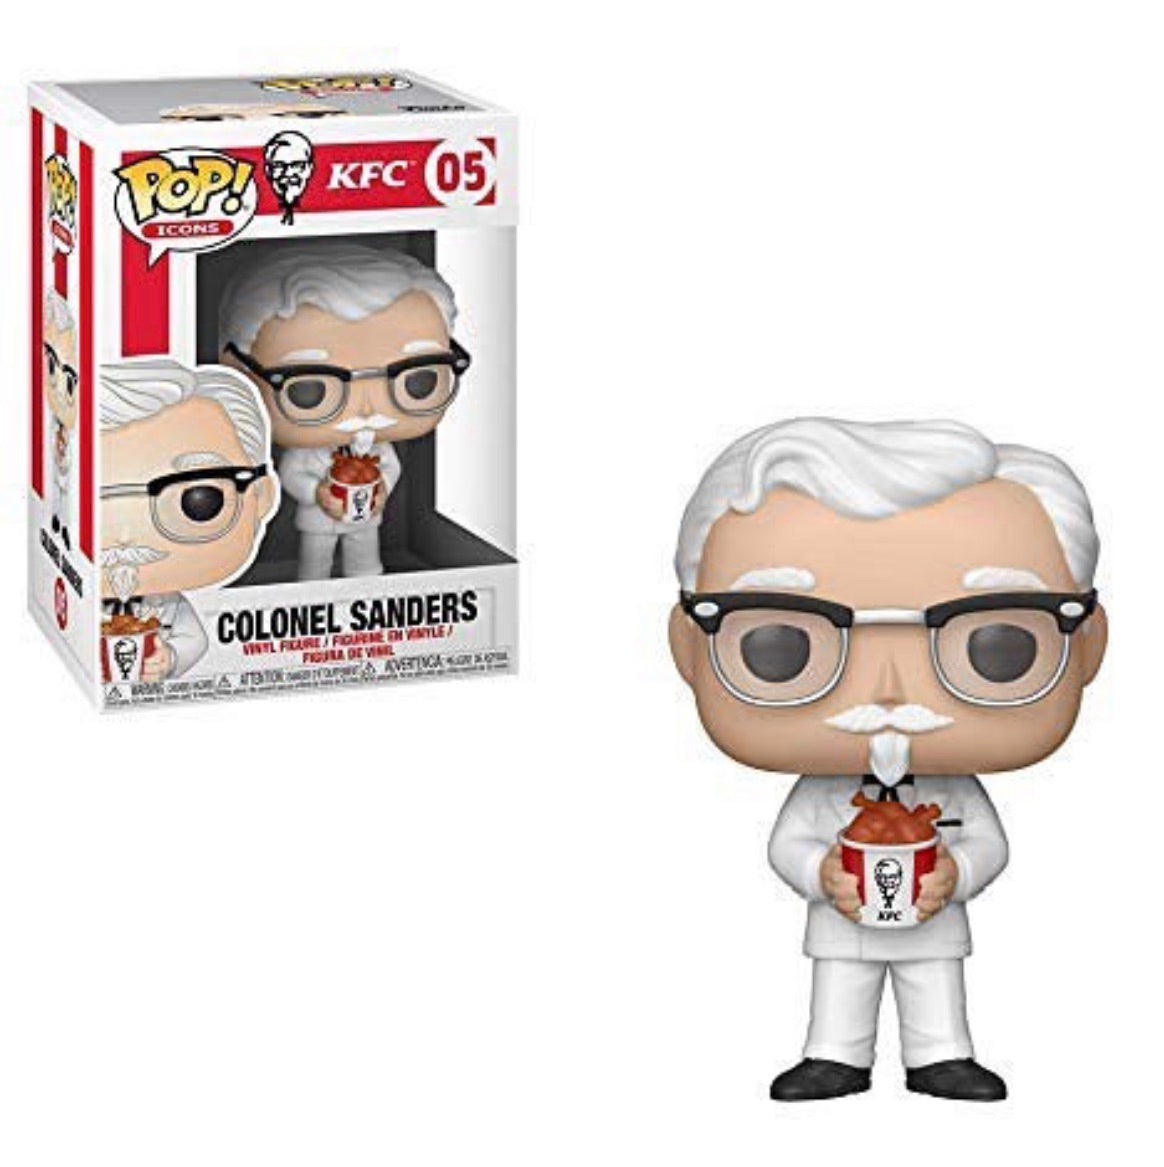 Funko Pop! Icon Colonel Sanders(Preorder)